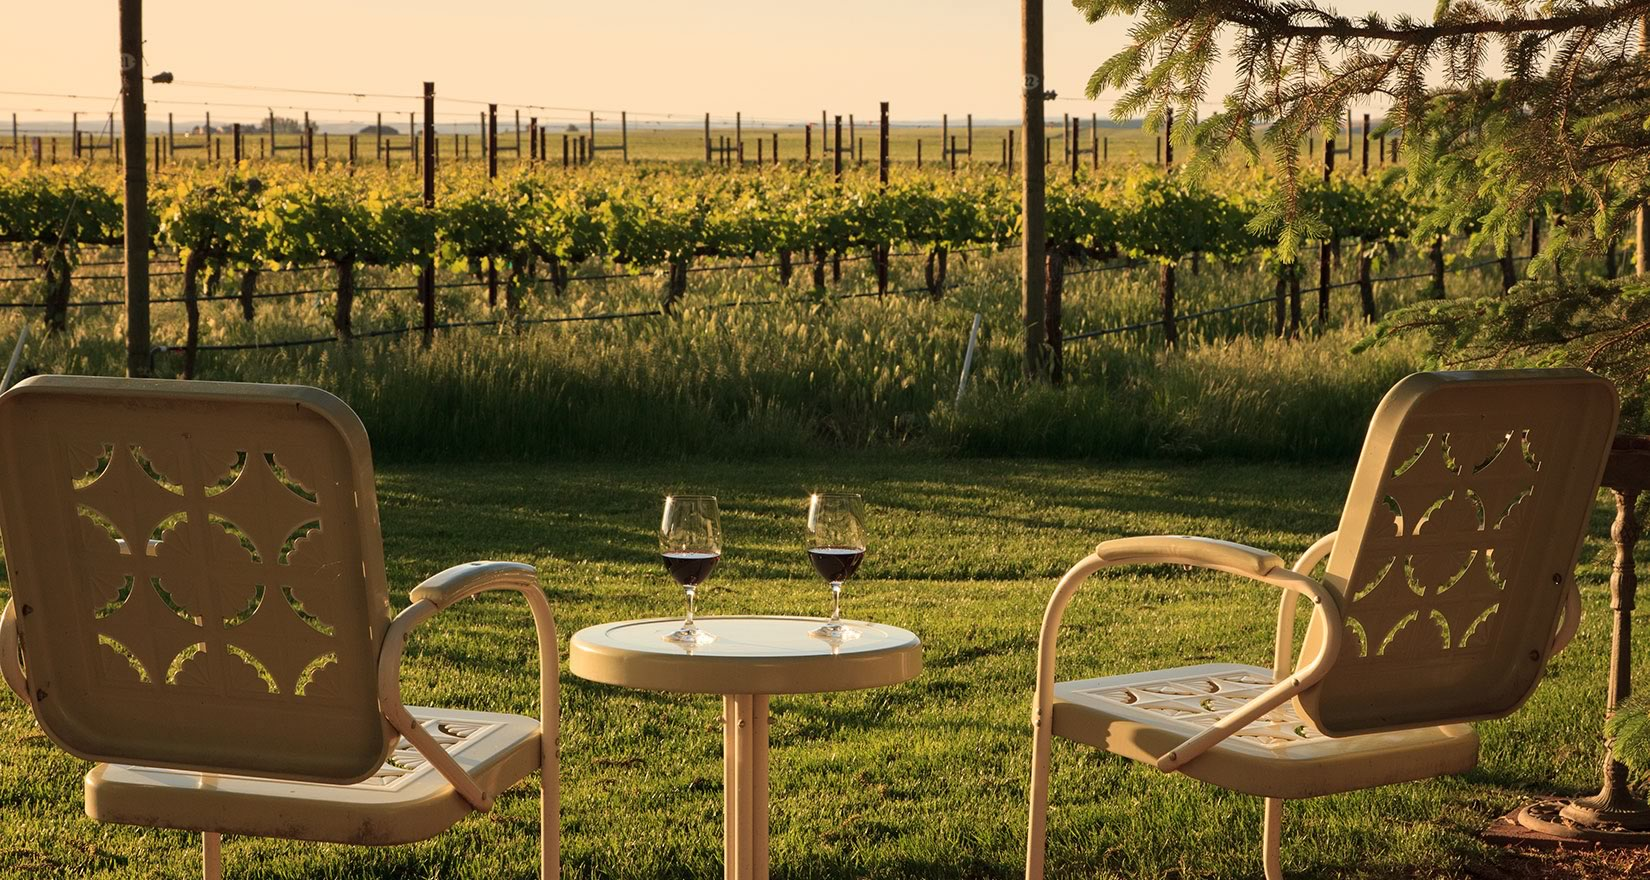 Vineyard with chairs and wine